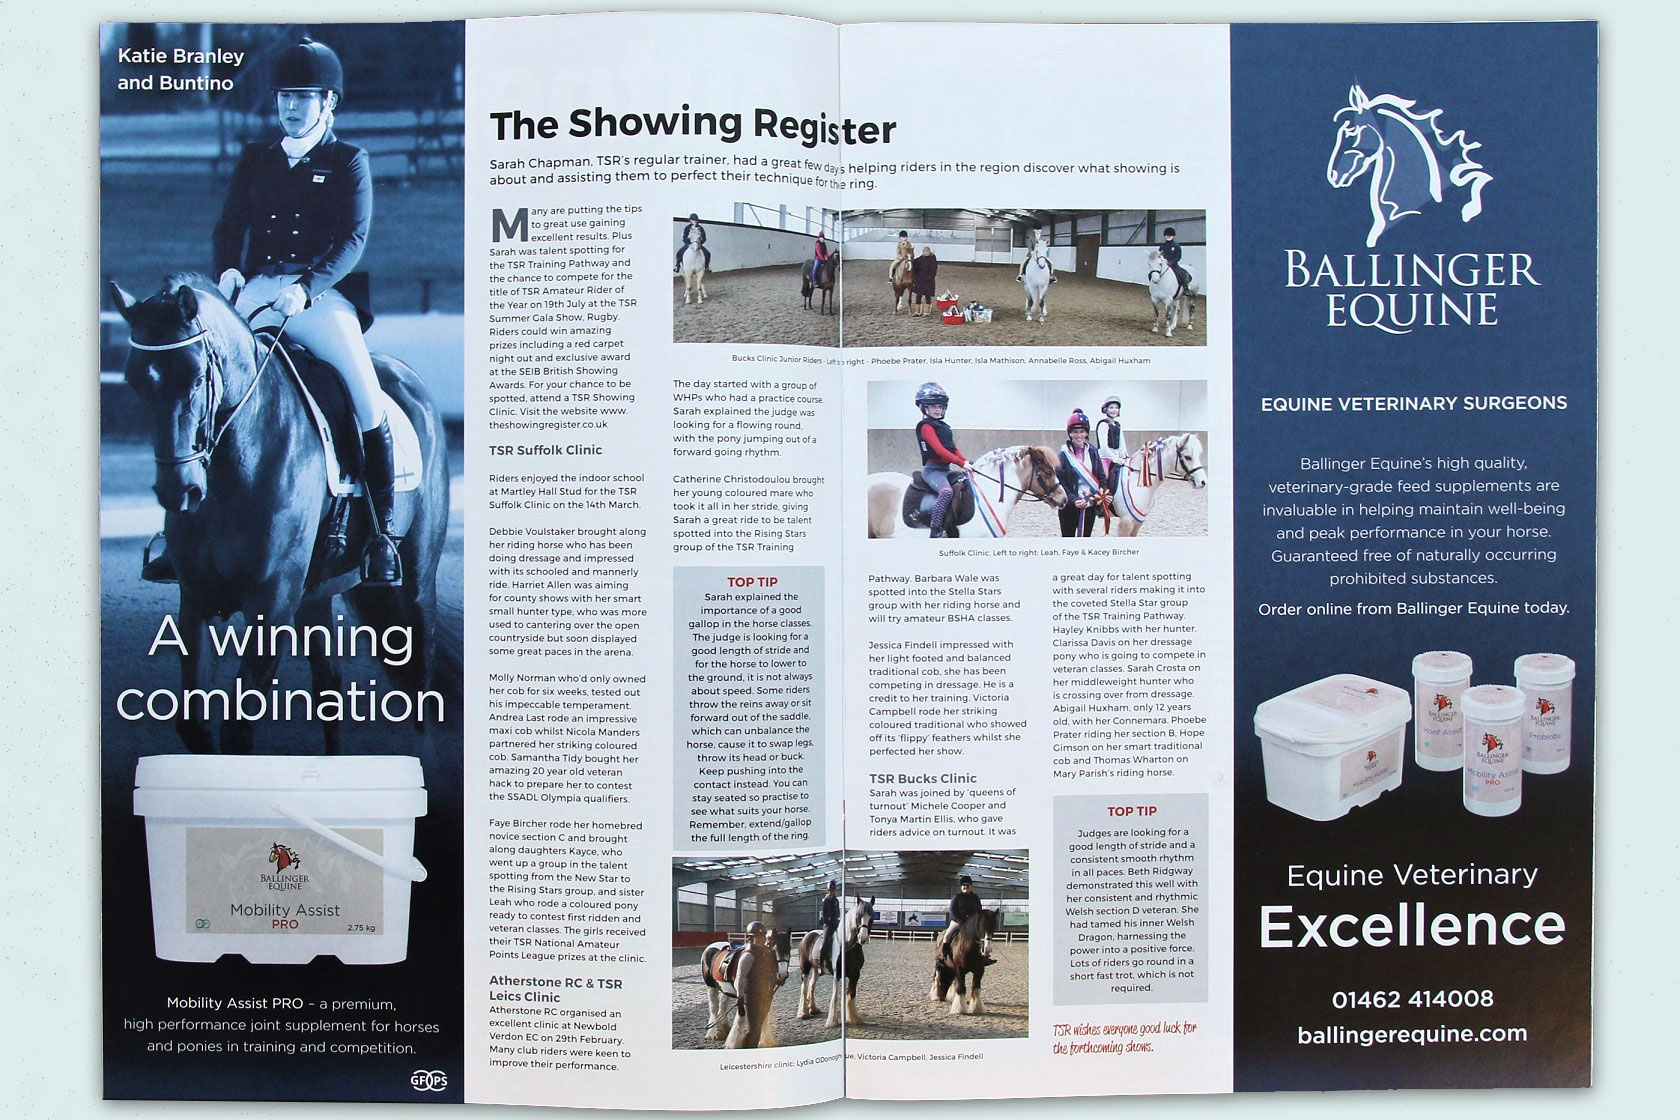 Hillier Consulting creates print advertising campaign for Ballinger Equine